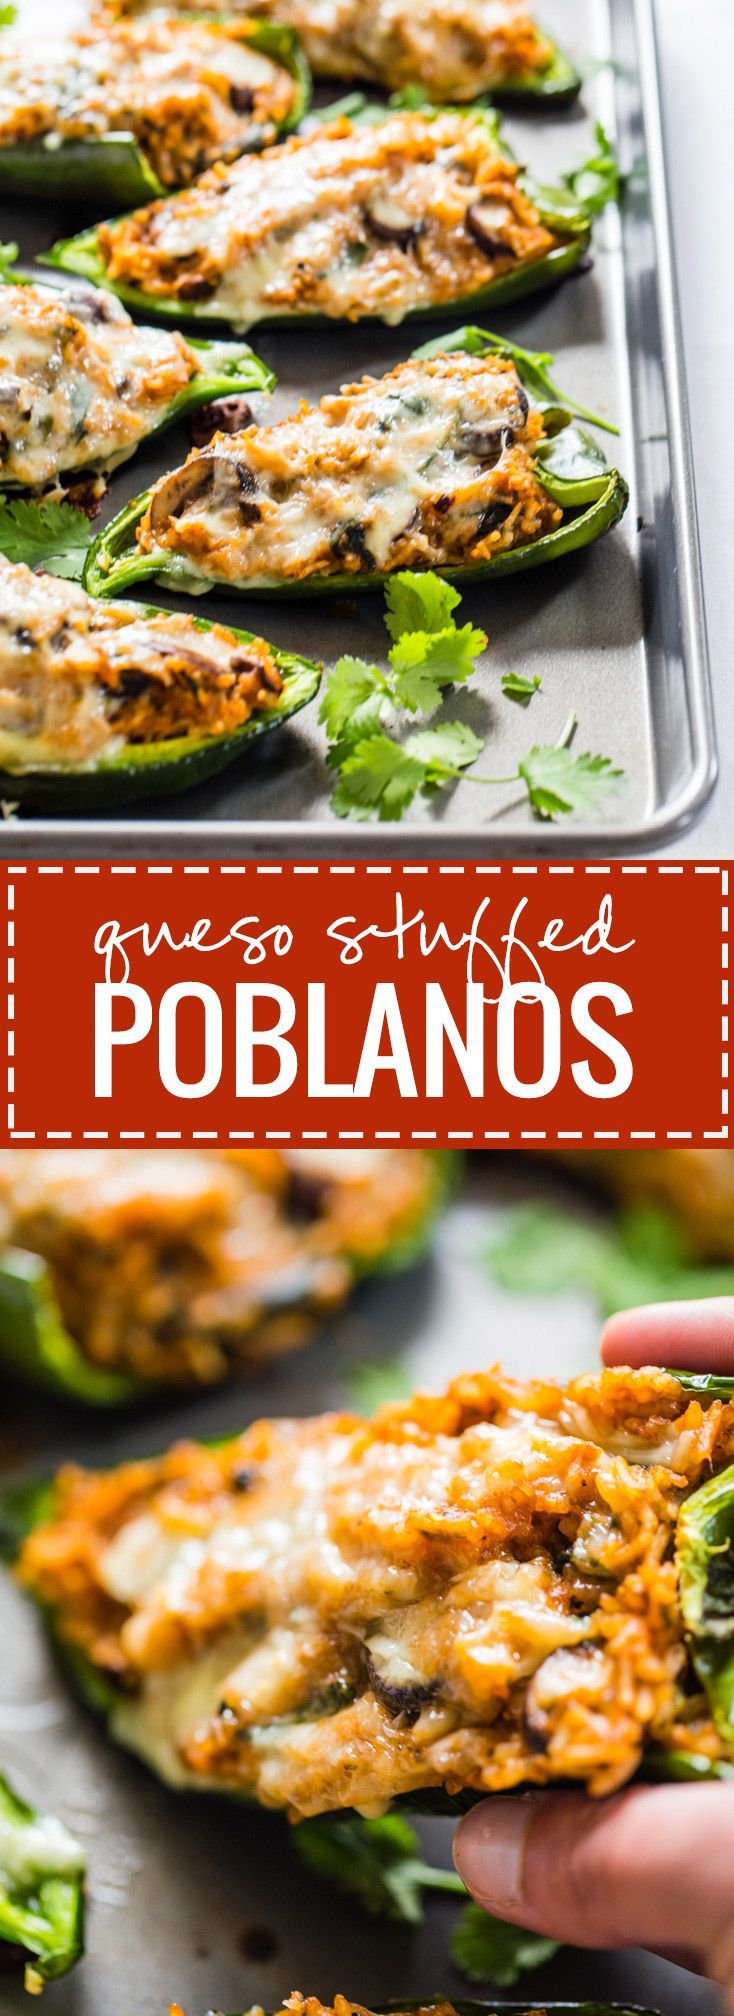 Queso Stuffed Poblanos recipe - Adaptable to whatever veggies or protein you have on hand. Easy vegetarian YUMS!